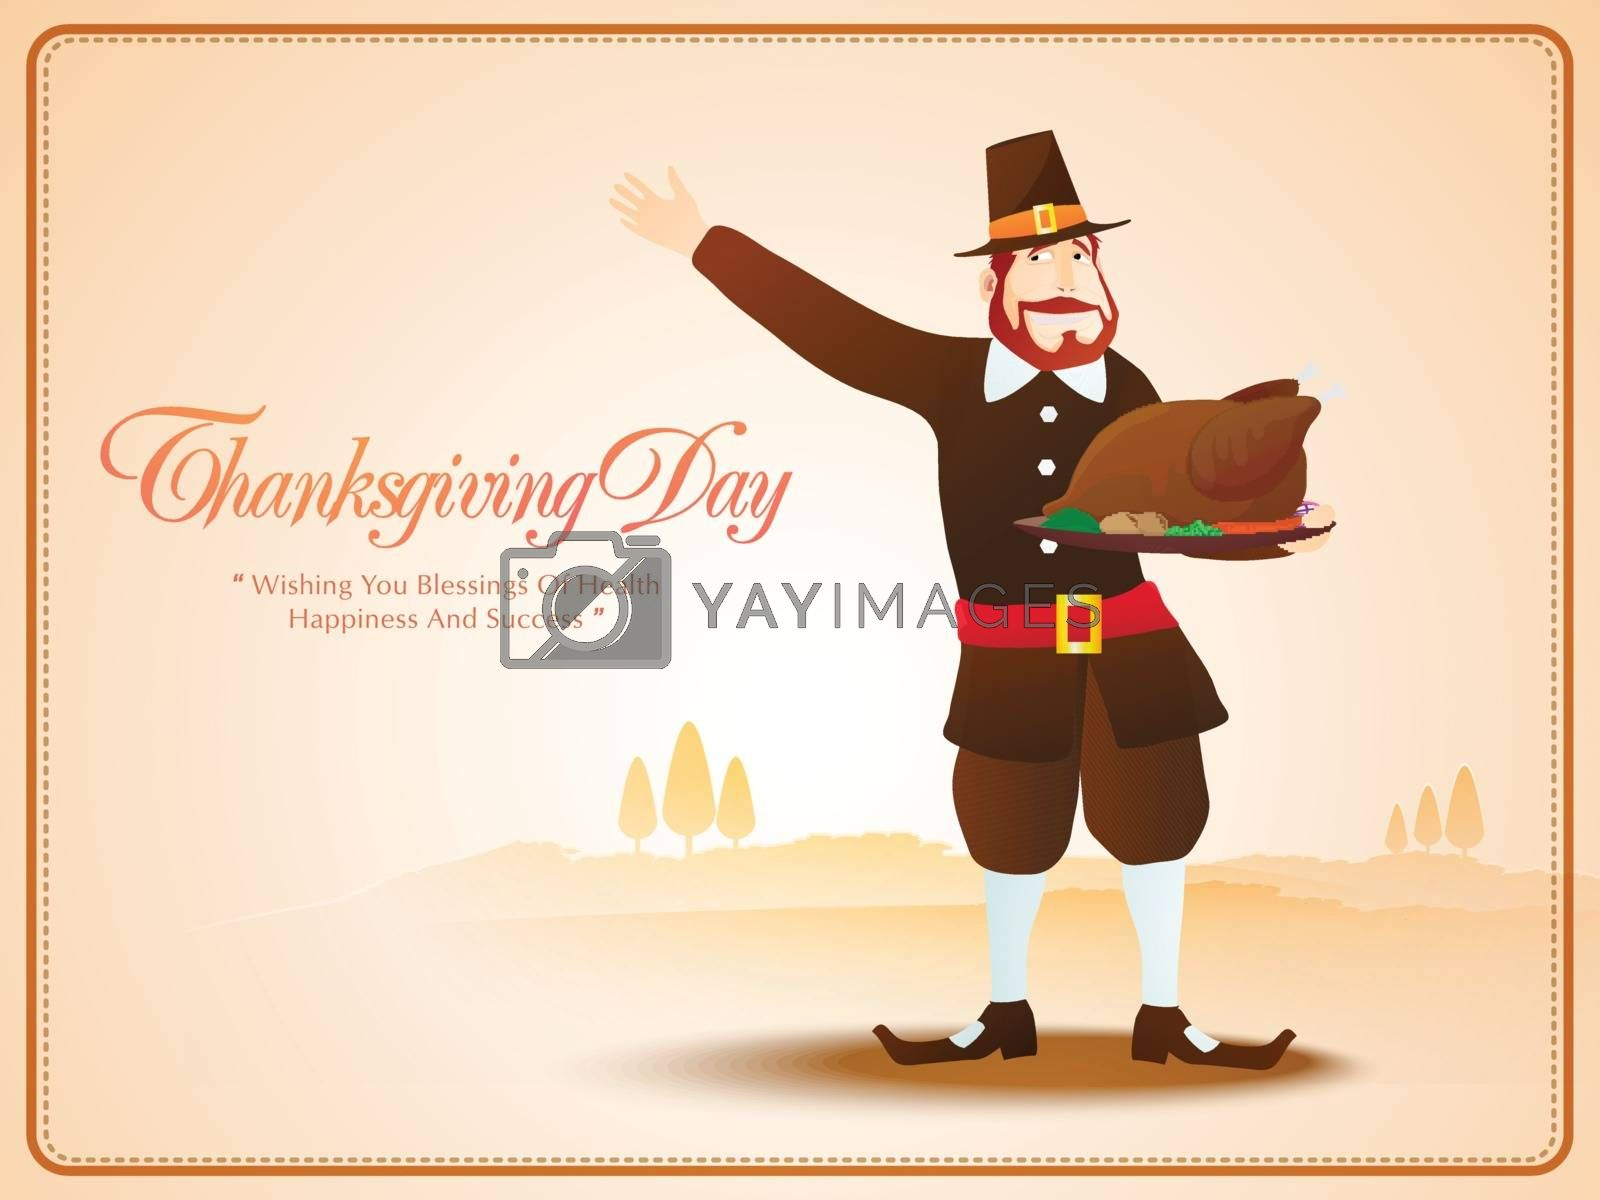 Pilgrim man holding roasted chicken on shiny background for Happy Thanksgiving Day celebration.